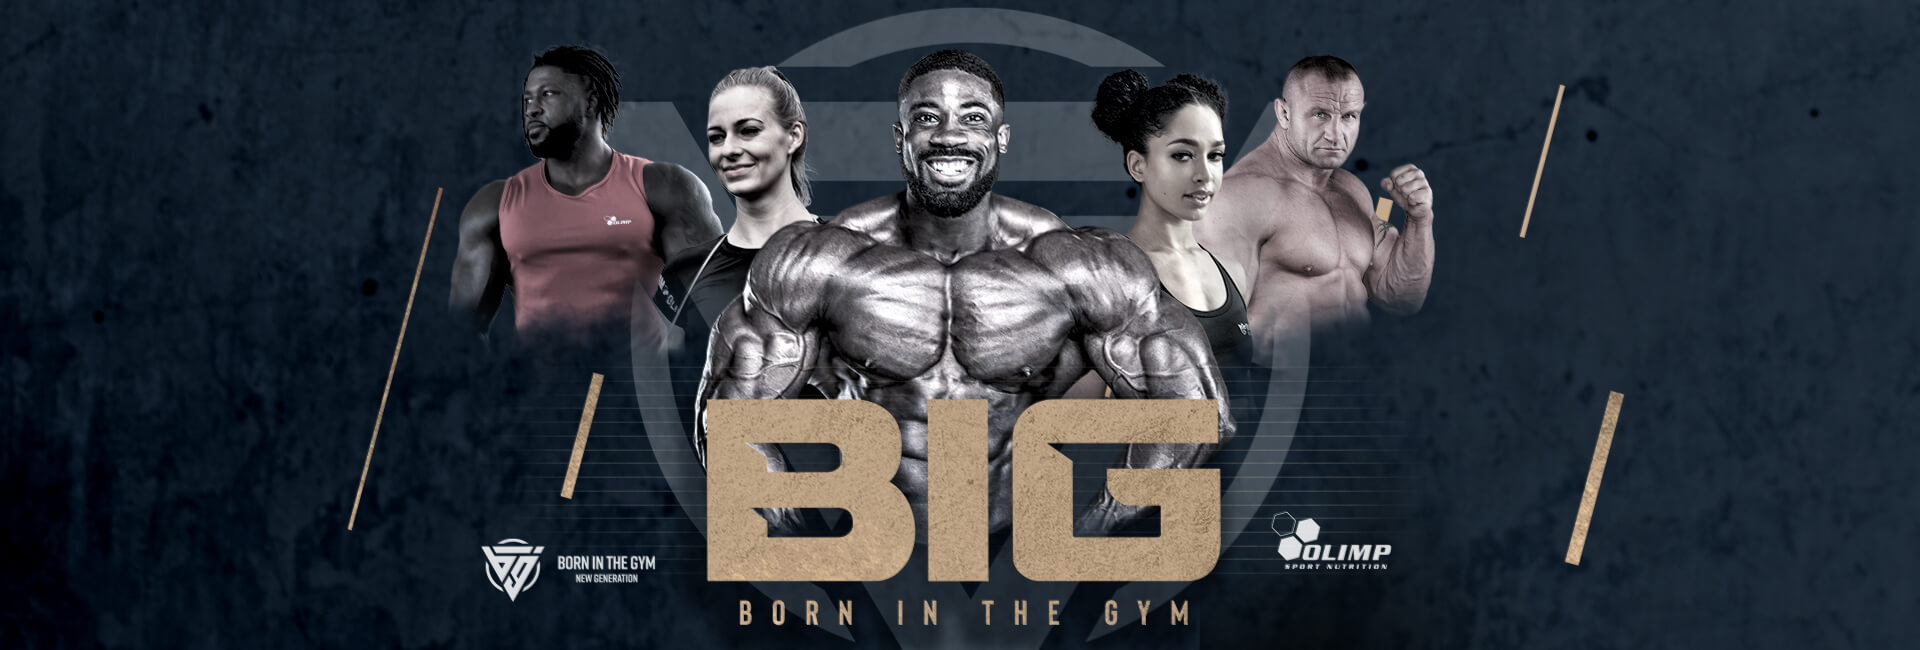 BORN IN THE GYM